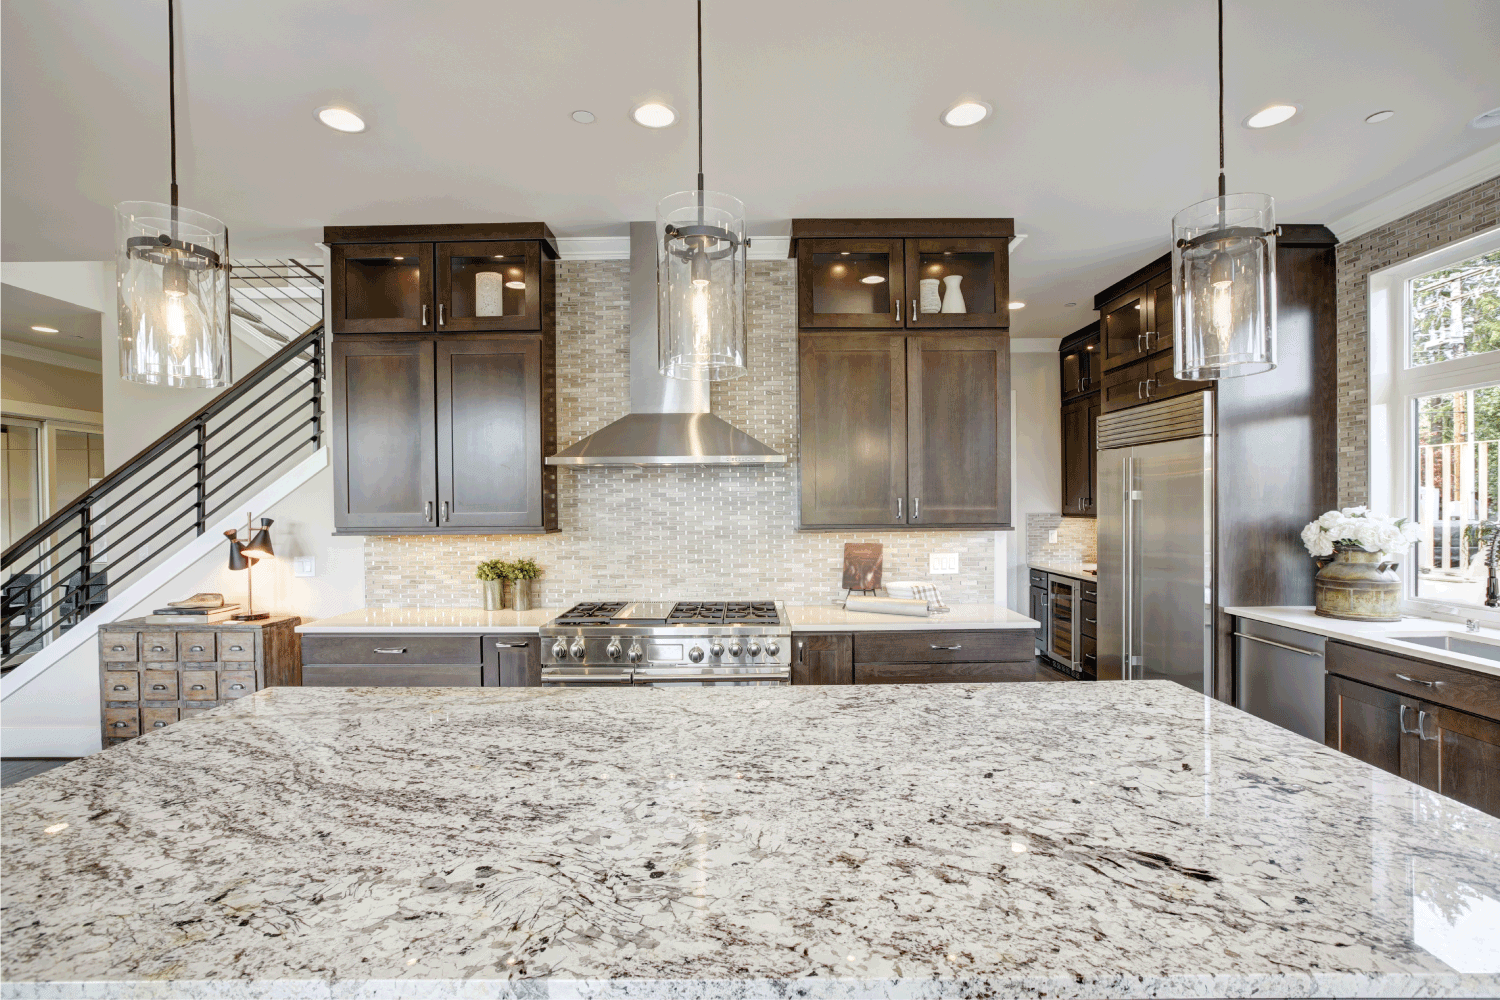 Luxury kitchen accented with large granite kitchen island, taupe tile backsplash, natural brown wood cabinets and lots of natural light